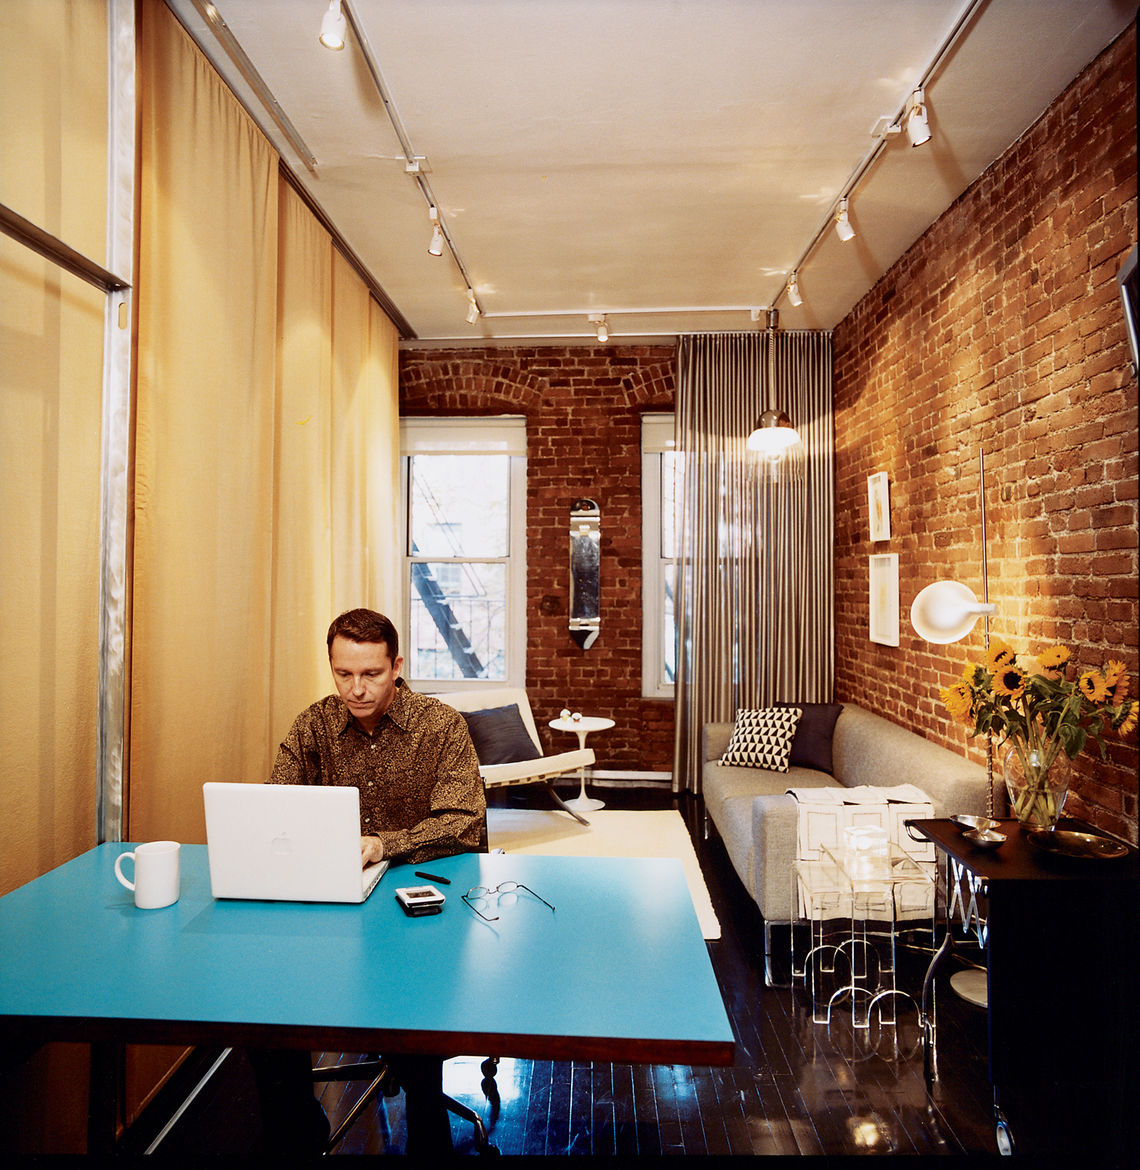 Checking email over coffee, Hughston places his laptop on the fold-down Formica table that Sanders designed. Jack Lenor Larsen's Cybelle fabric covers the wall on his right. Above the sofa hangs an Italian pendant lamp of mysterious origin; if you recogni